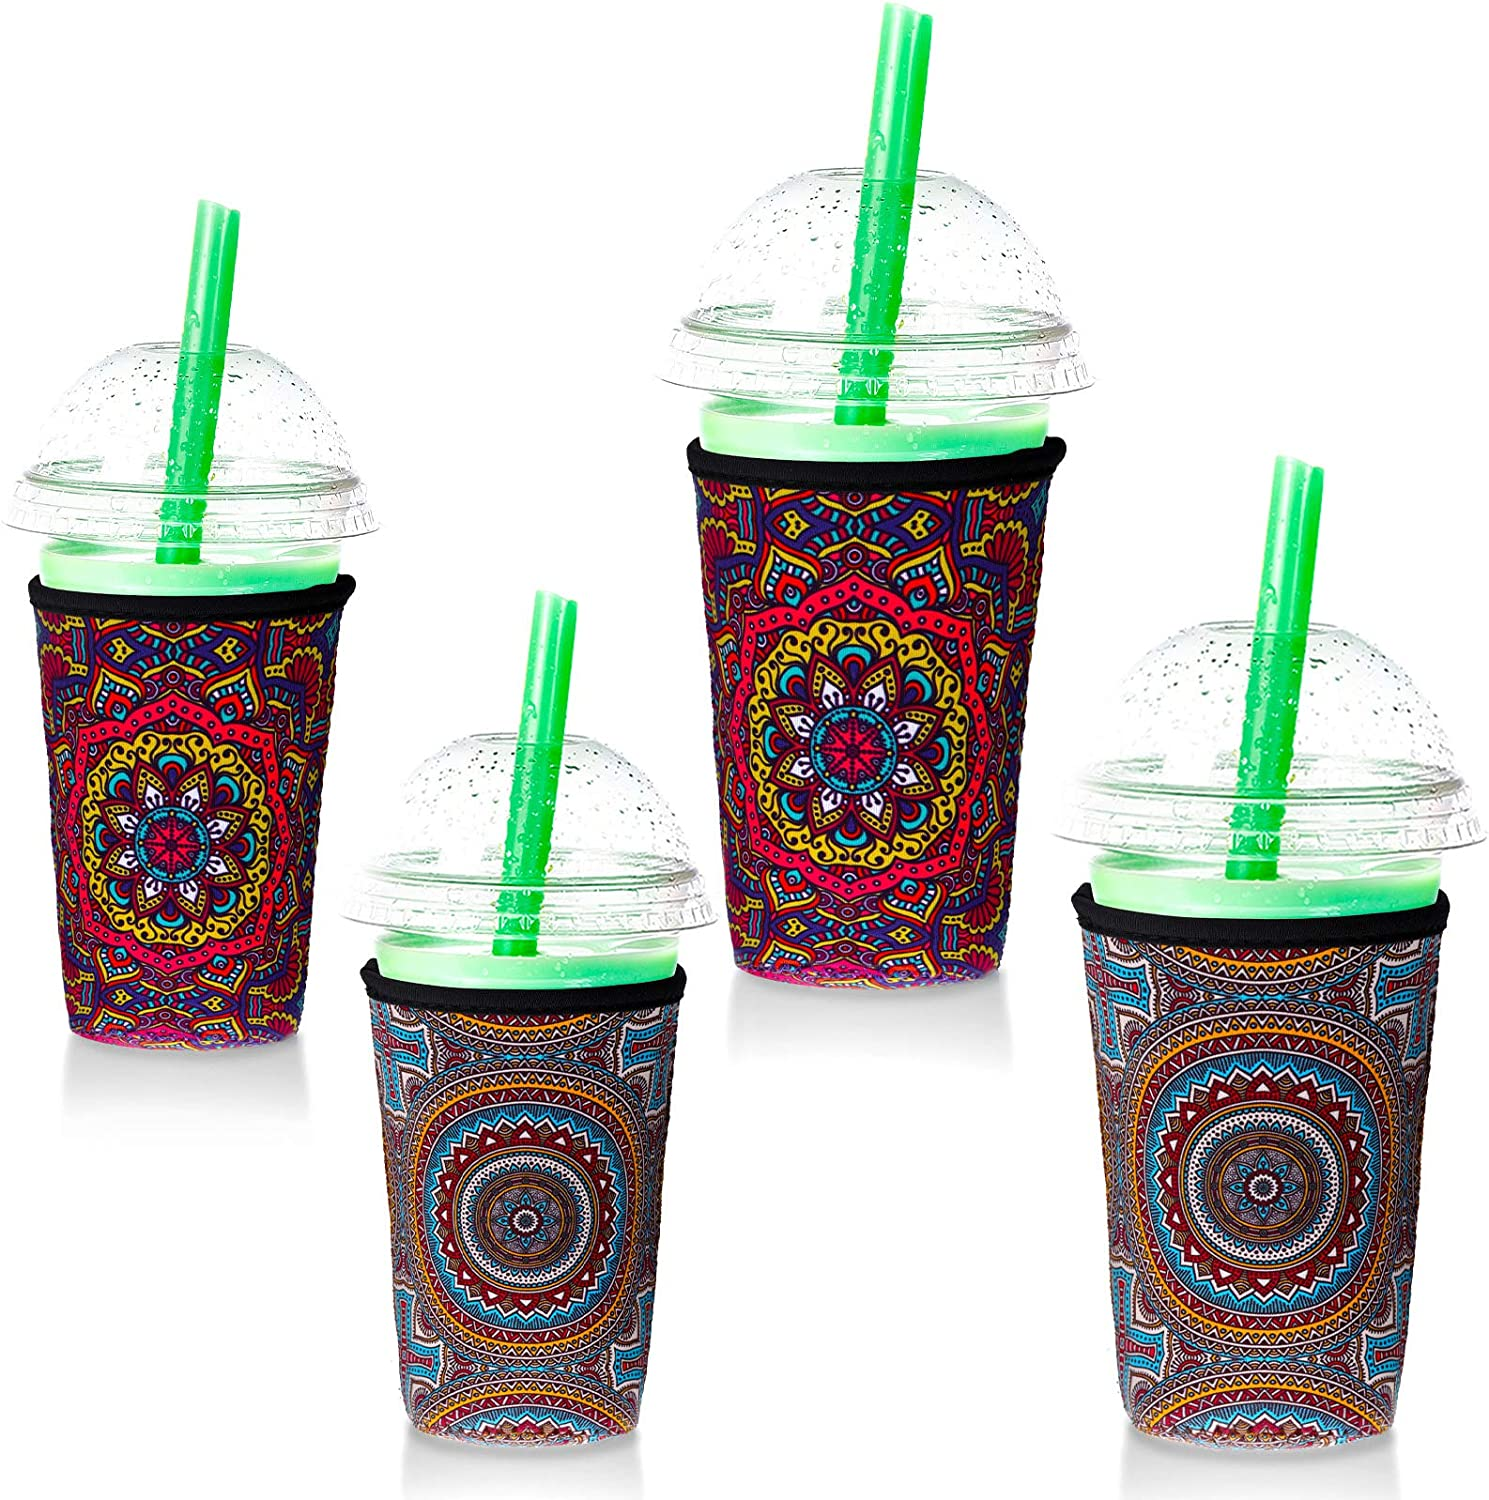 4 Pieces Reusable Ice Coffee Sleeve Insulated Drinks Sleeve Neoprene Cup Cover for 24 oz 32 oz Cold Hot Drinks Beverages Cup Bottle (Colorful Flower)